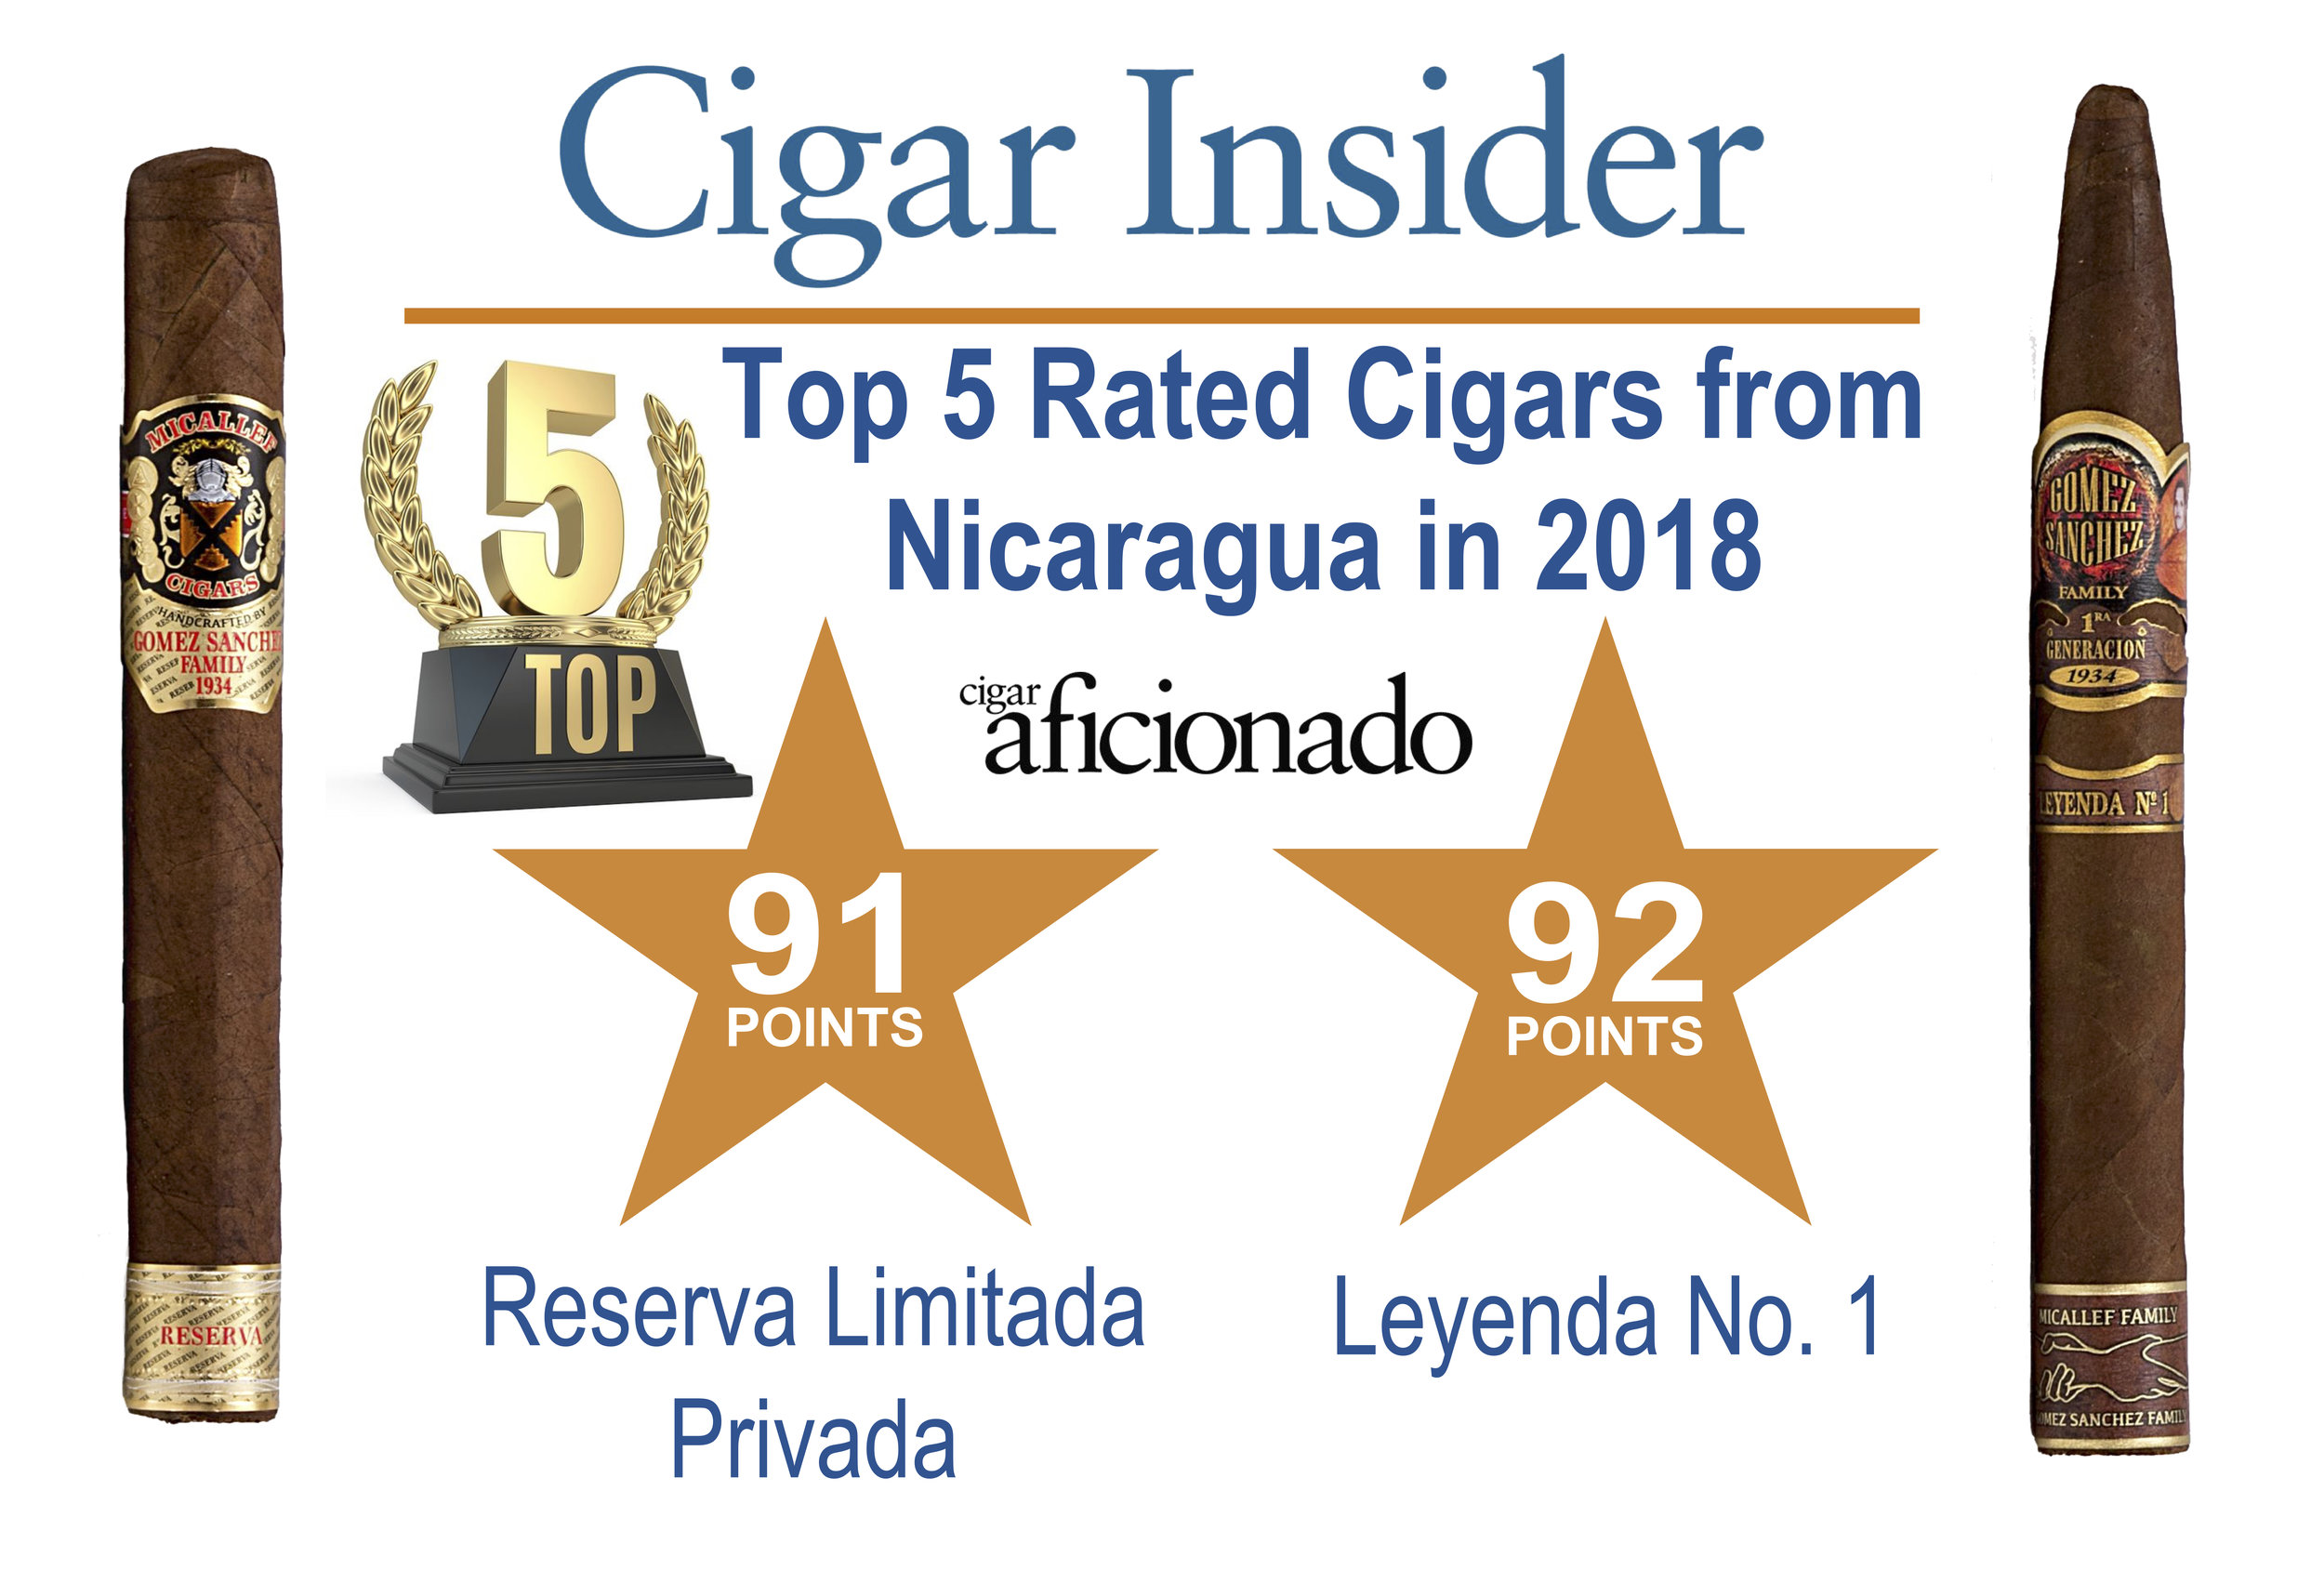 MICALLEF BLOG CI 2018 Top 5 Rated Cigars from Nicaragua in 2018.jpg